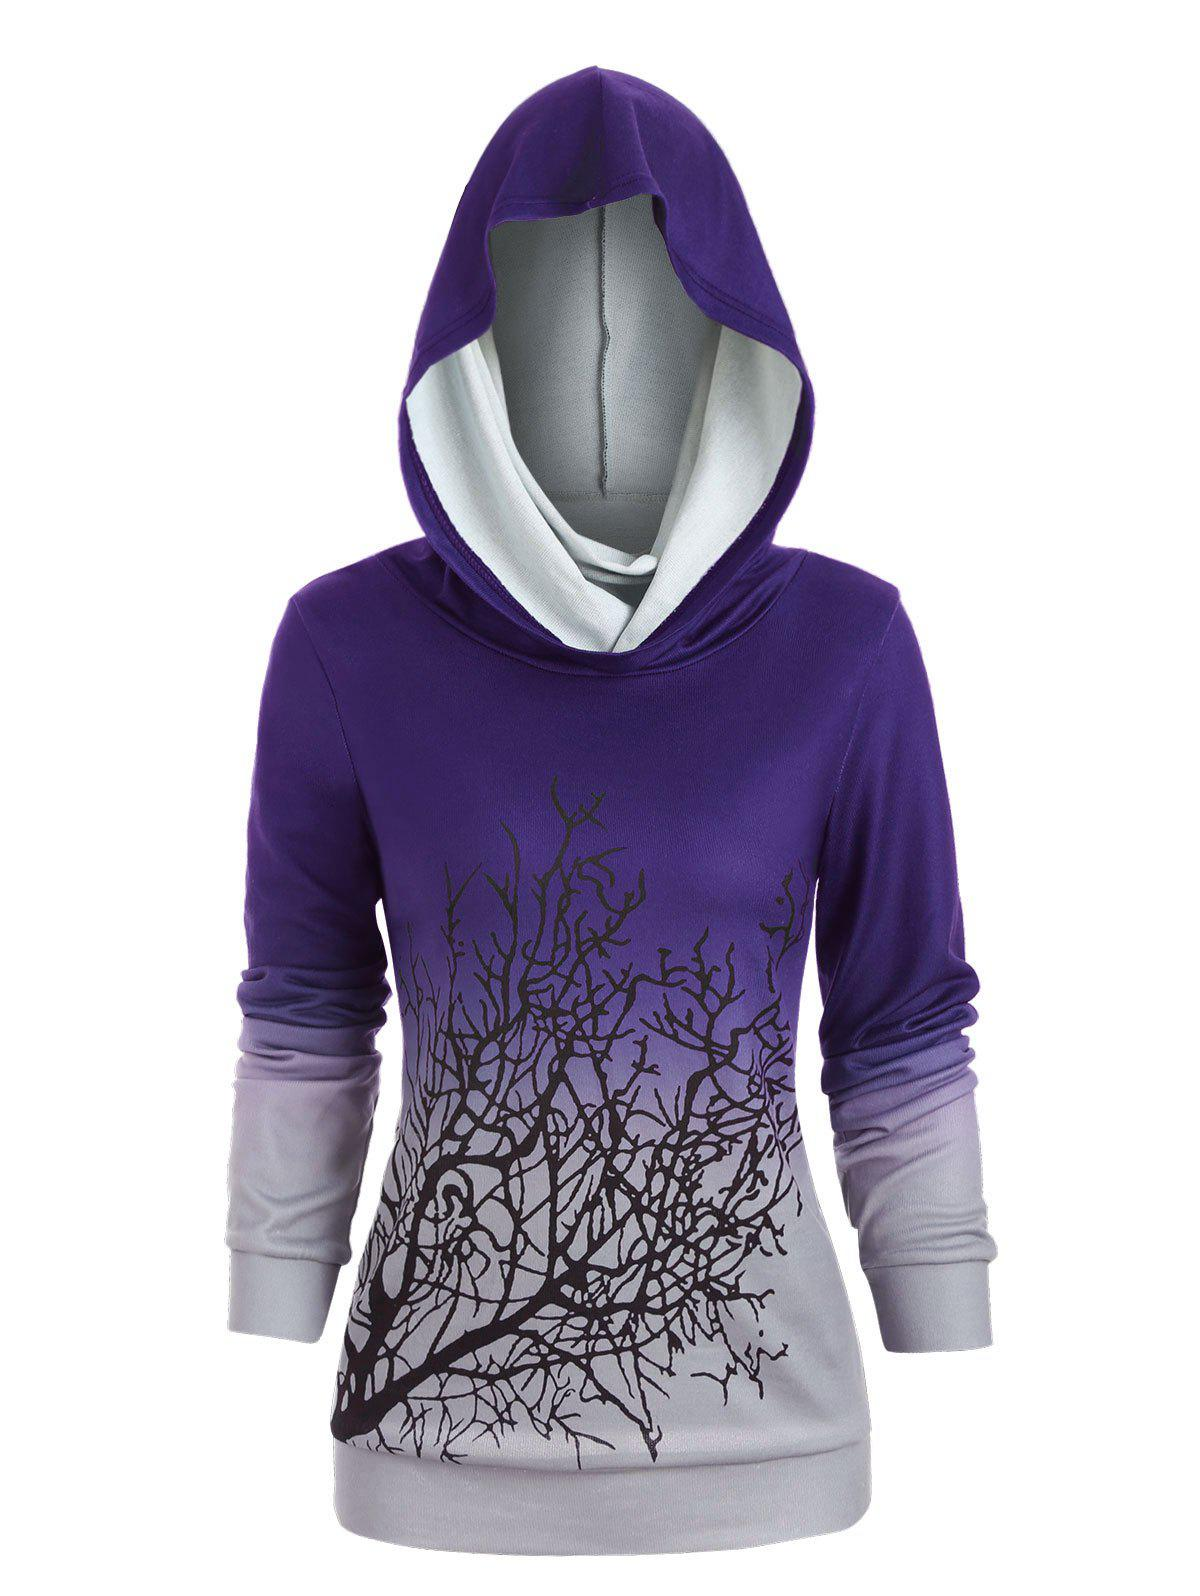 Sweat-shirt d'Halloween Arbre Imprimé à Col Convertible Pourpre  L